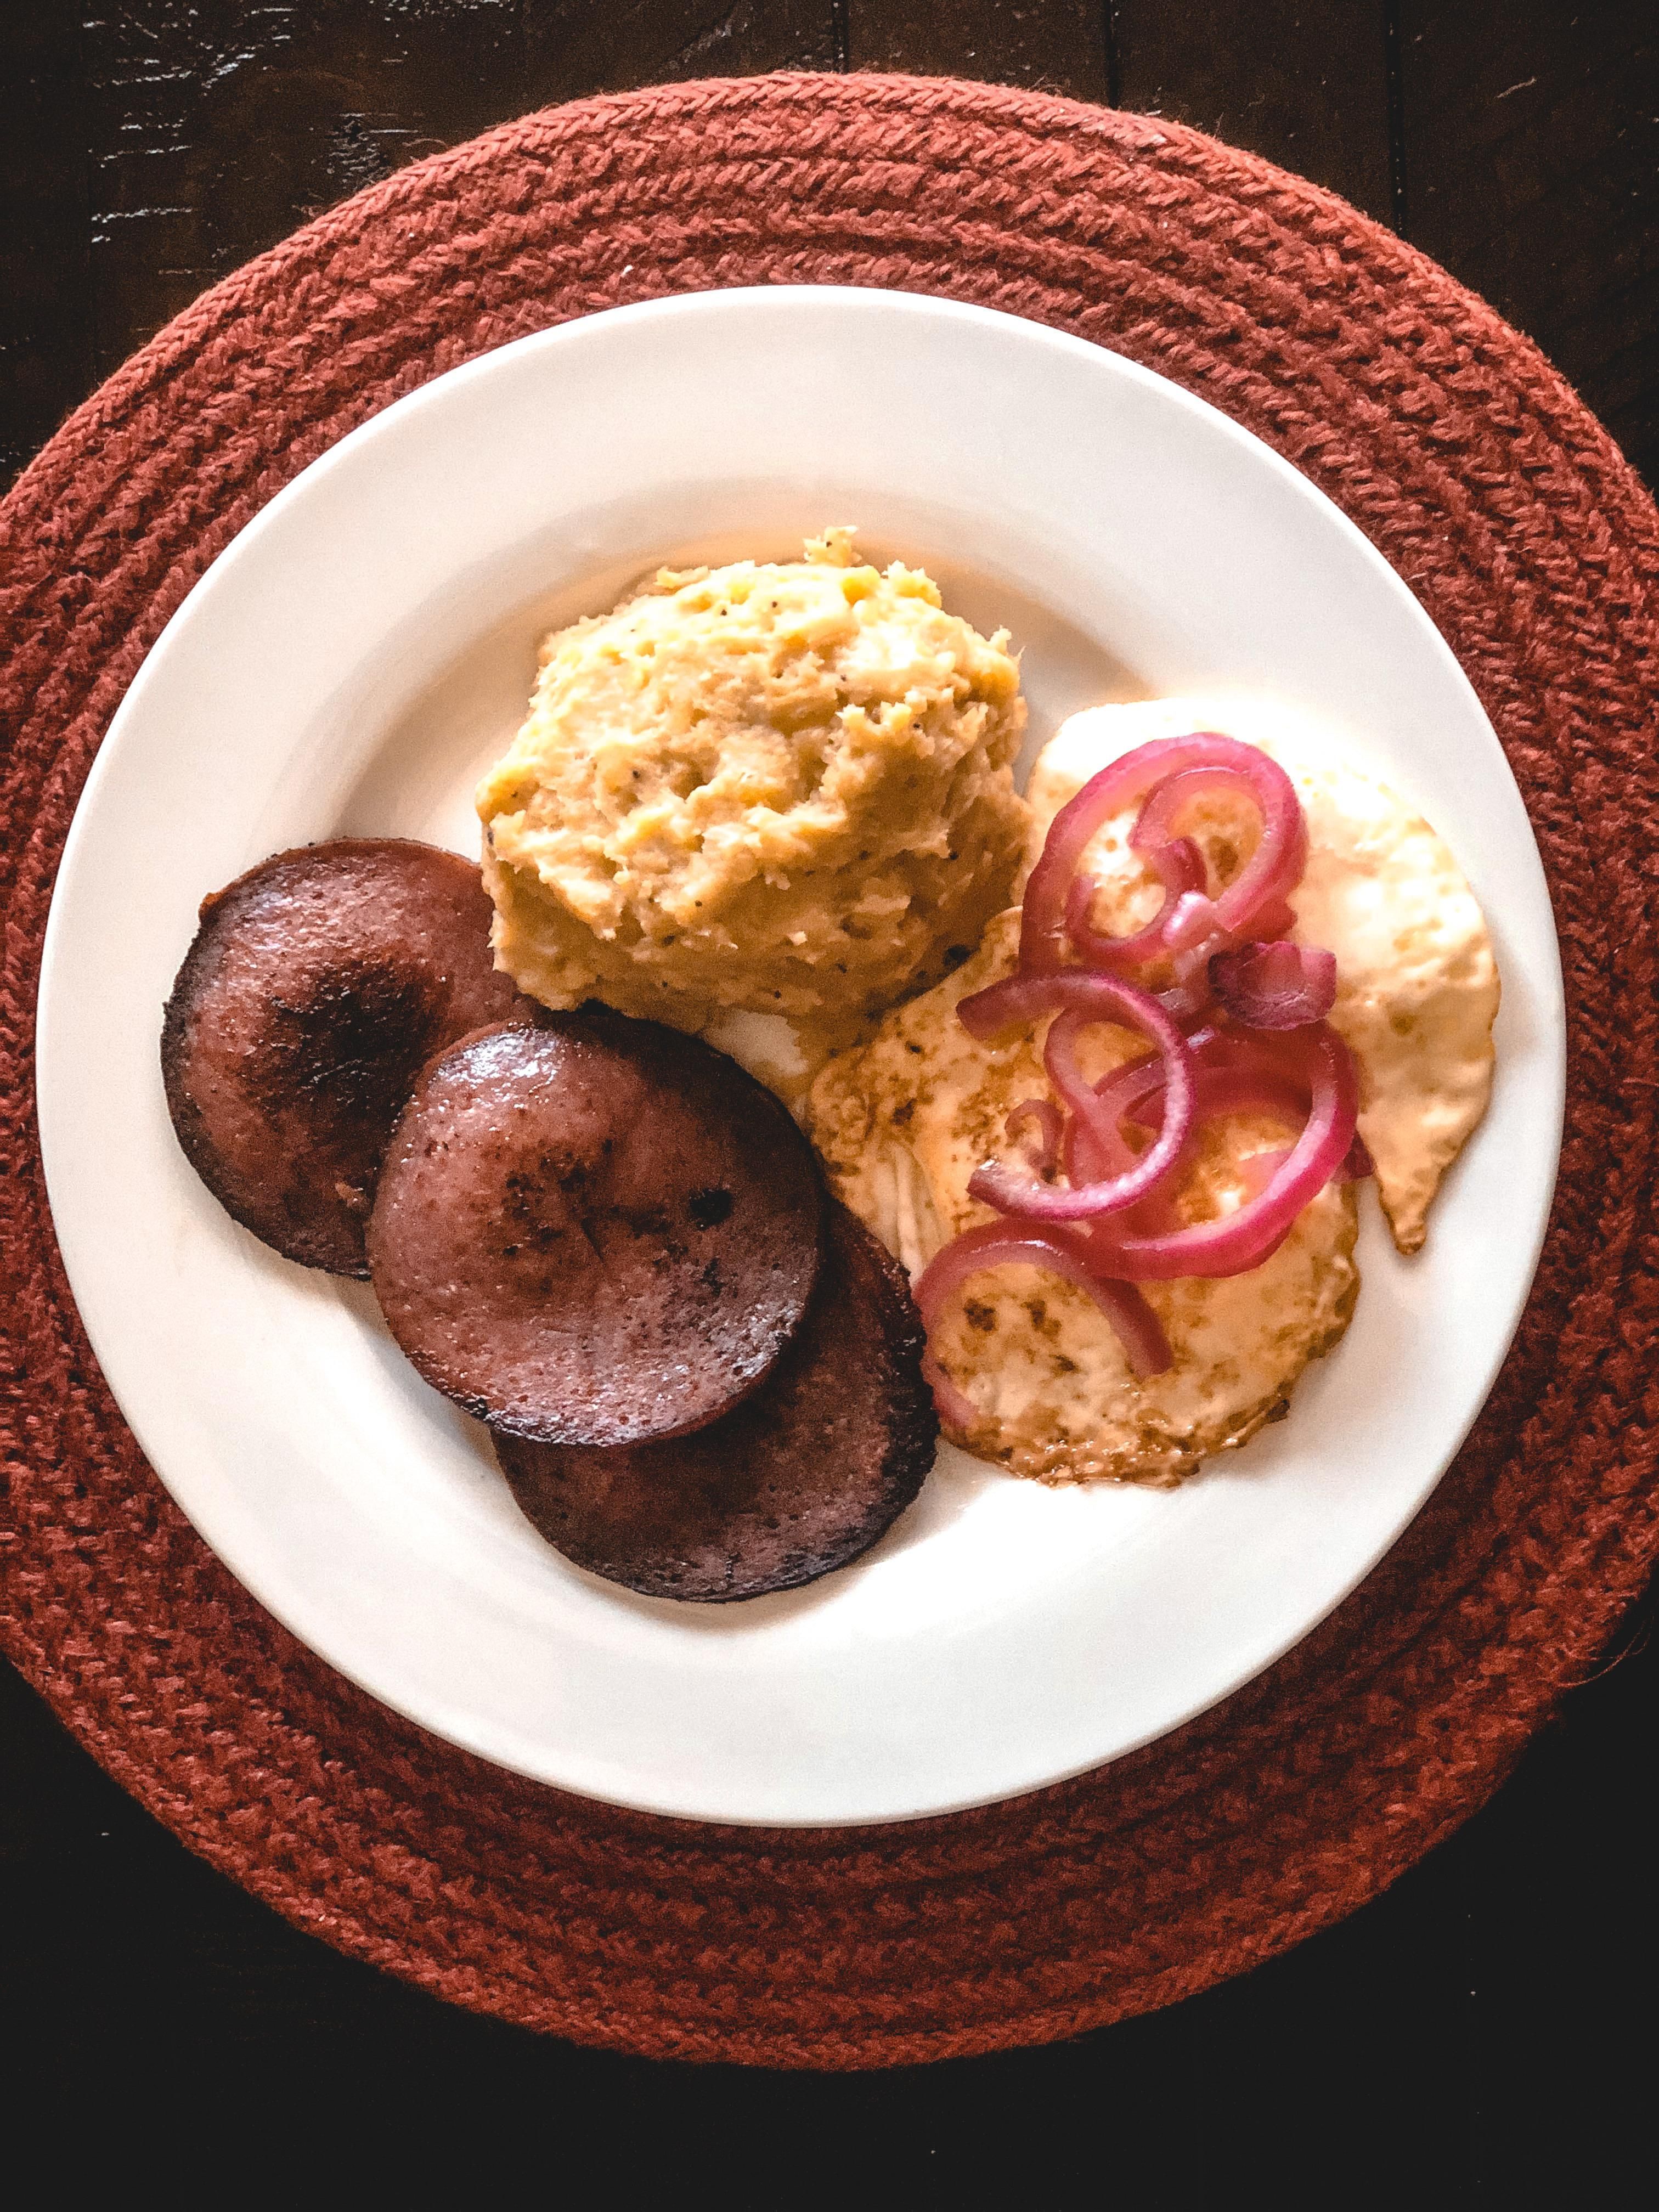 homemade dominican breakfast mangu boiled and mashed plantains with fried salami and eggs topped with red on in 2020 mashed plantains food pinterest